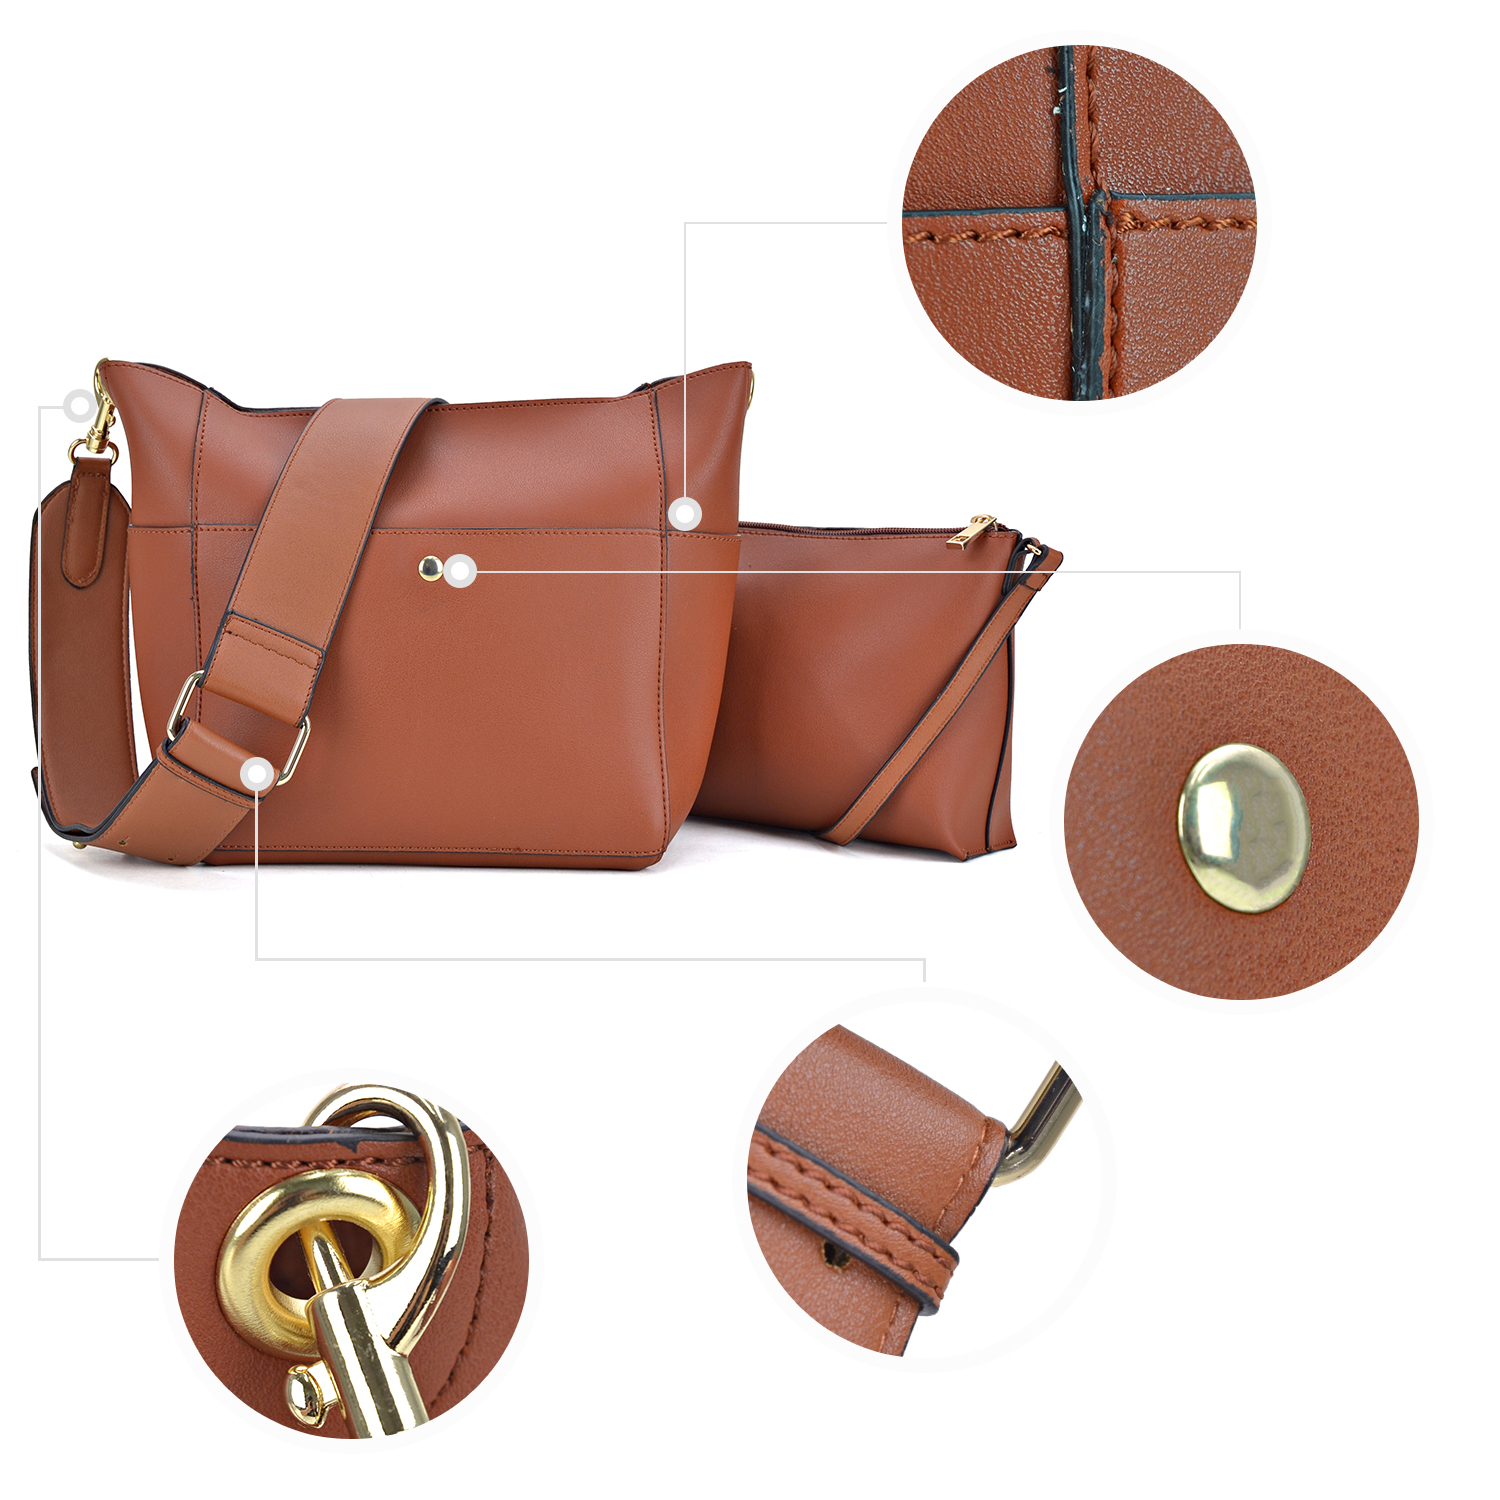 3-in-1 Faux Leather Mini Satchel/ Crossbody/Messenger Bag with Front Twist lock deco, matching pouch and dangling coin  pouch